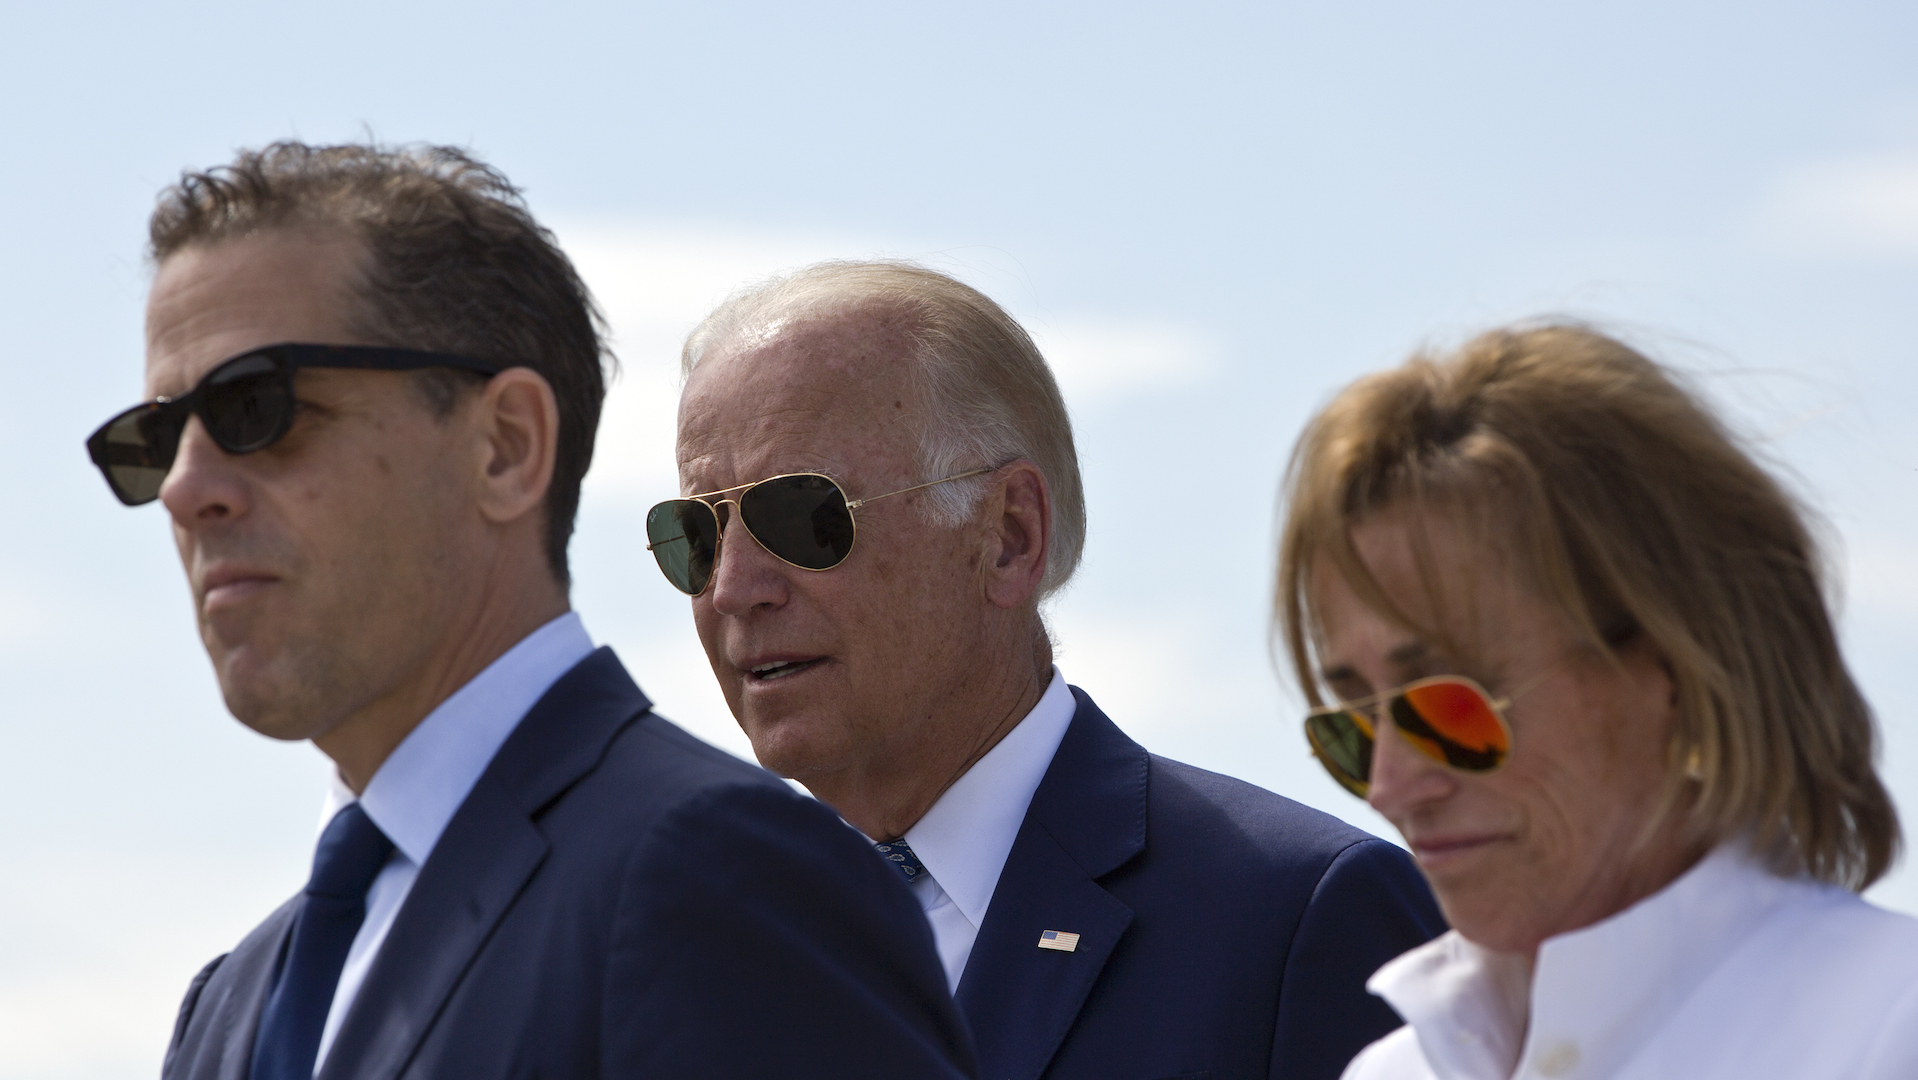 Trump pressed Ukrainian leader to investigate Biden's son, according to people familiar with the matter